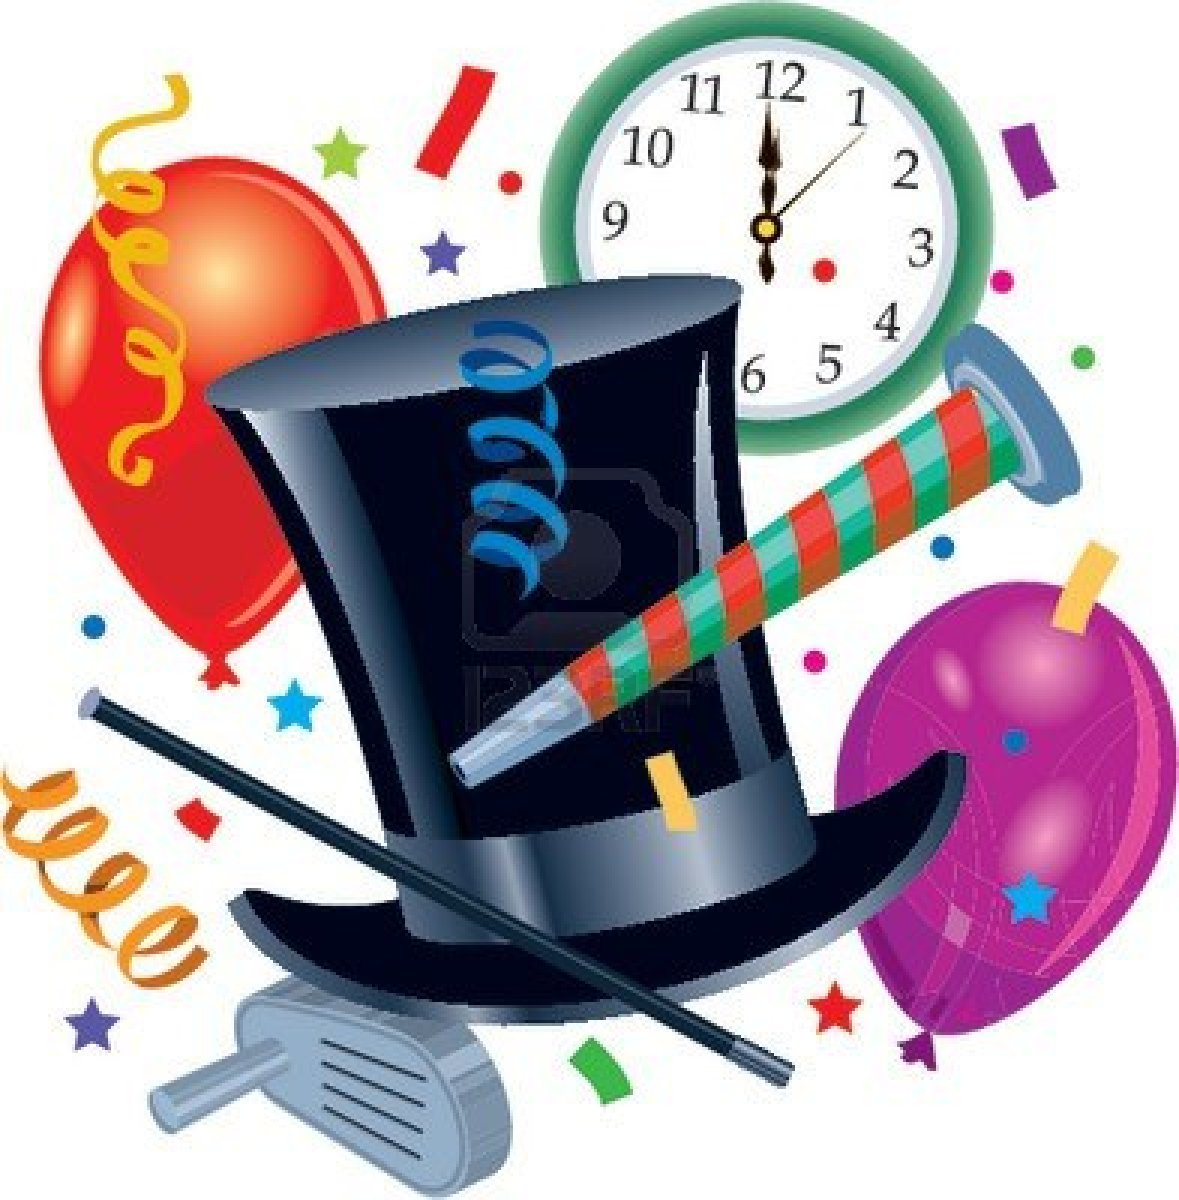 New years eve 2018 clipart graphic black and white library Free New Years Eve Party Images, Download Free Clip Art, Free Clip ... graphic black and white library